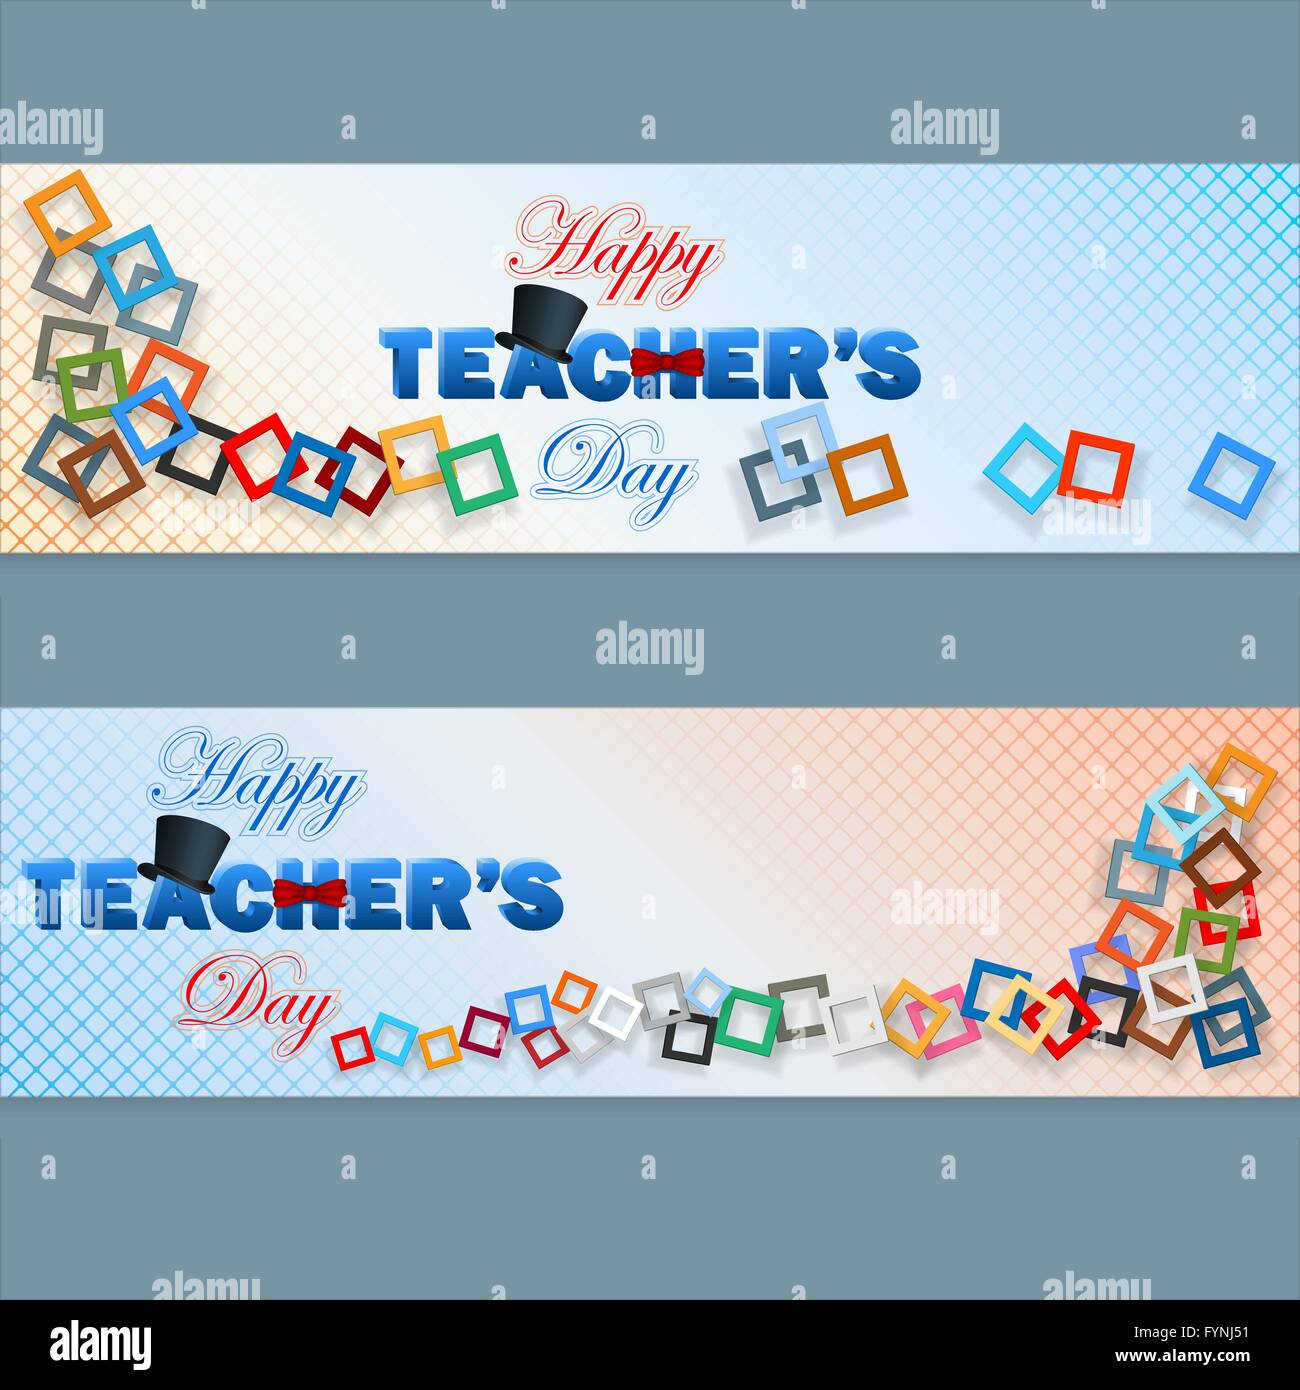 happy teachers day template 3d stock photos happy teachers day